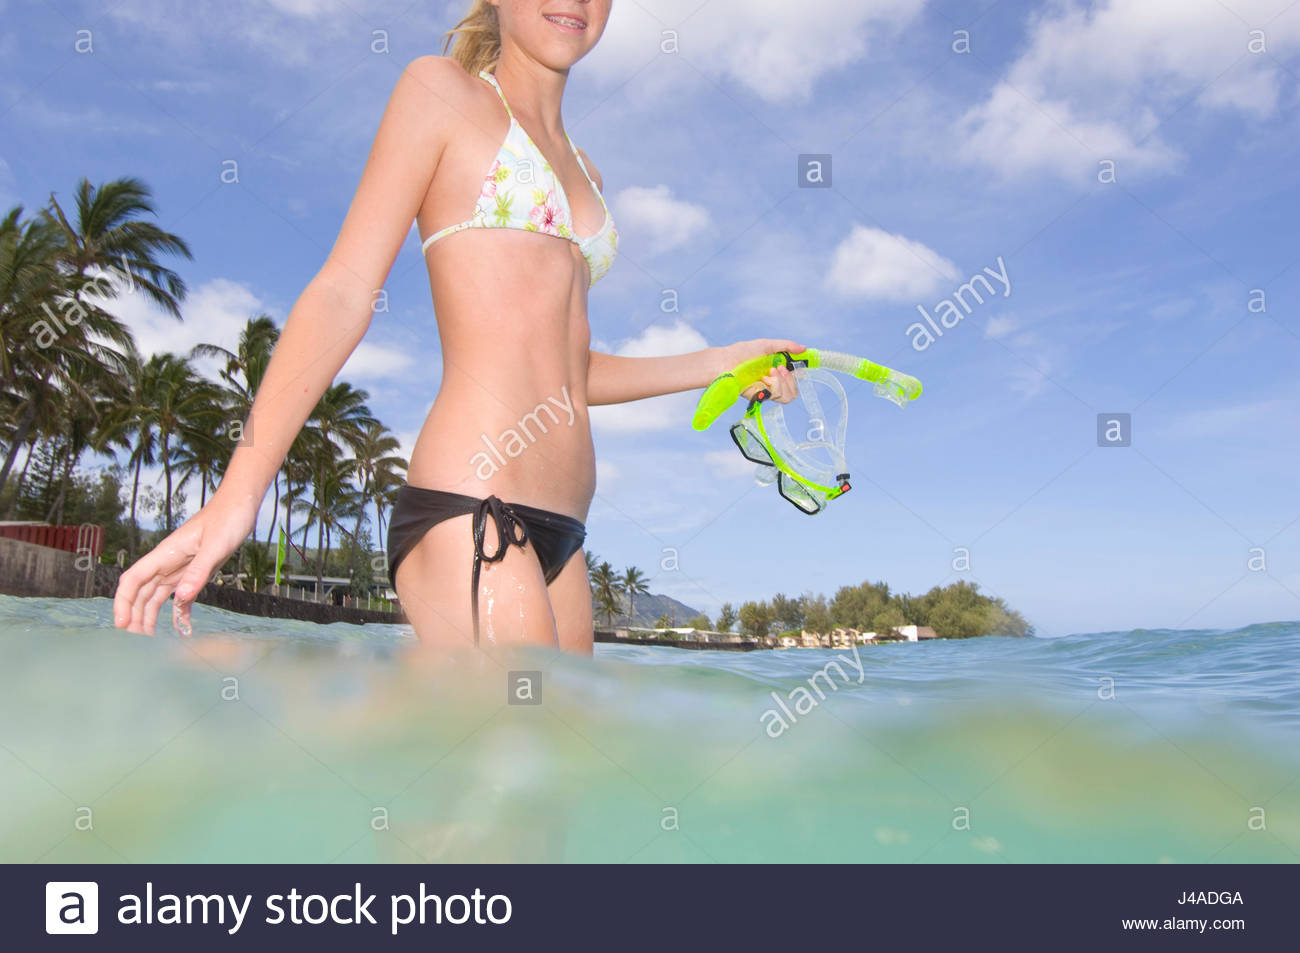 a59a93976444f Teenage girl with blonde hair wearing a two piece swimsuit standing in the  warm water of the Pacific Ocean off Mokuleia Beach